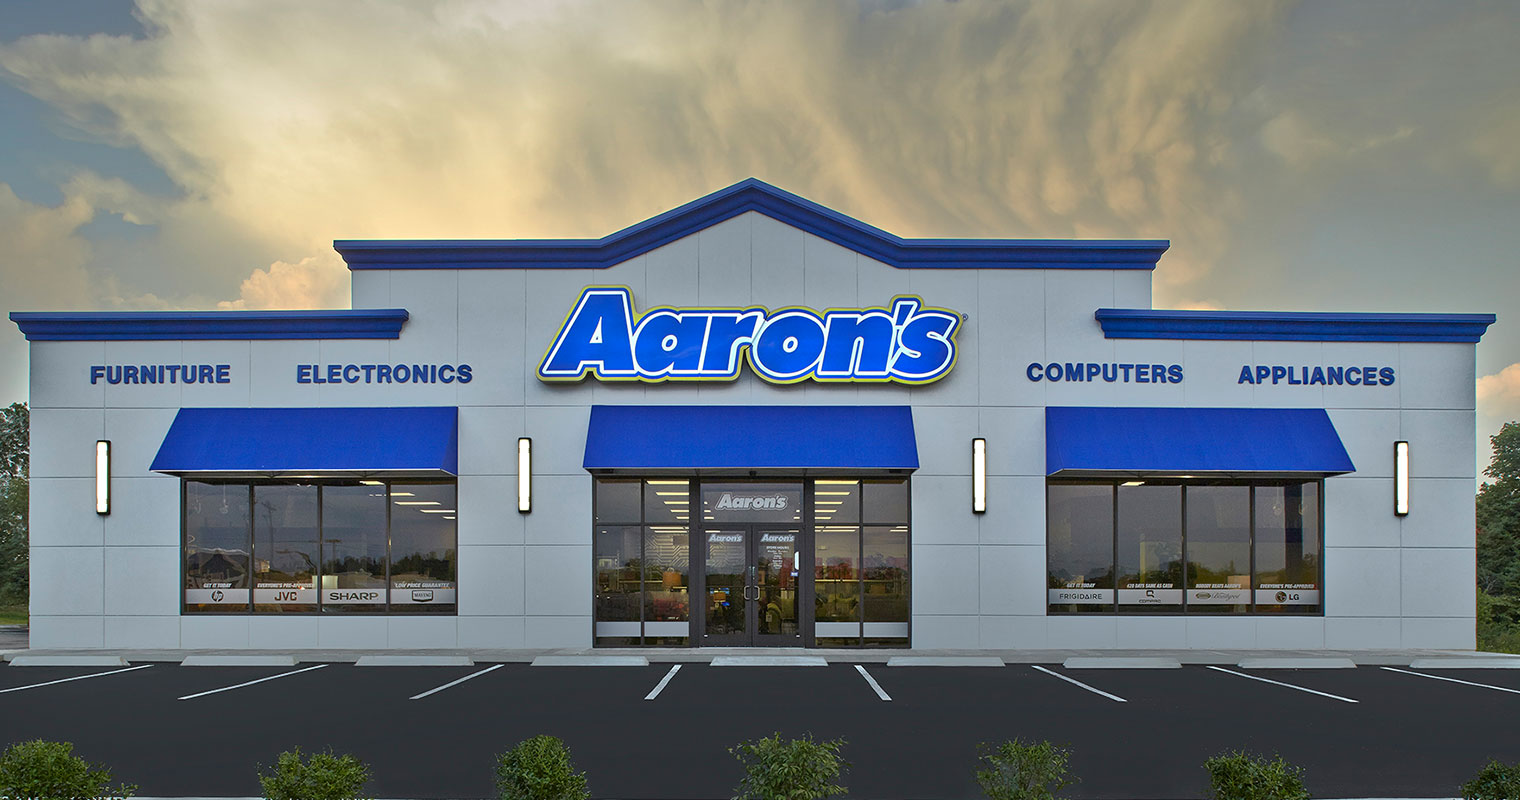 Aaron's Stores footer image